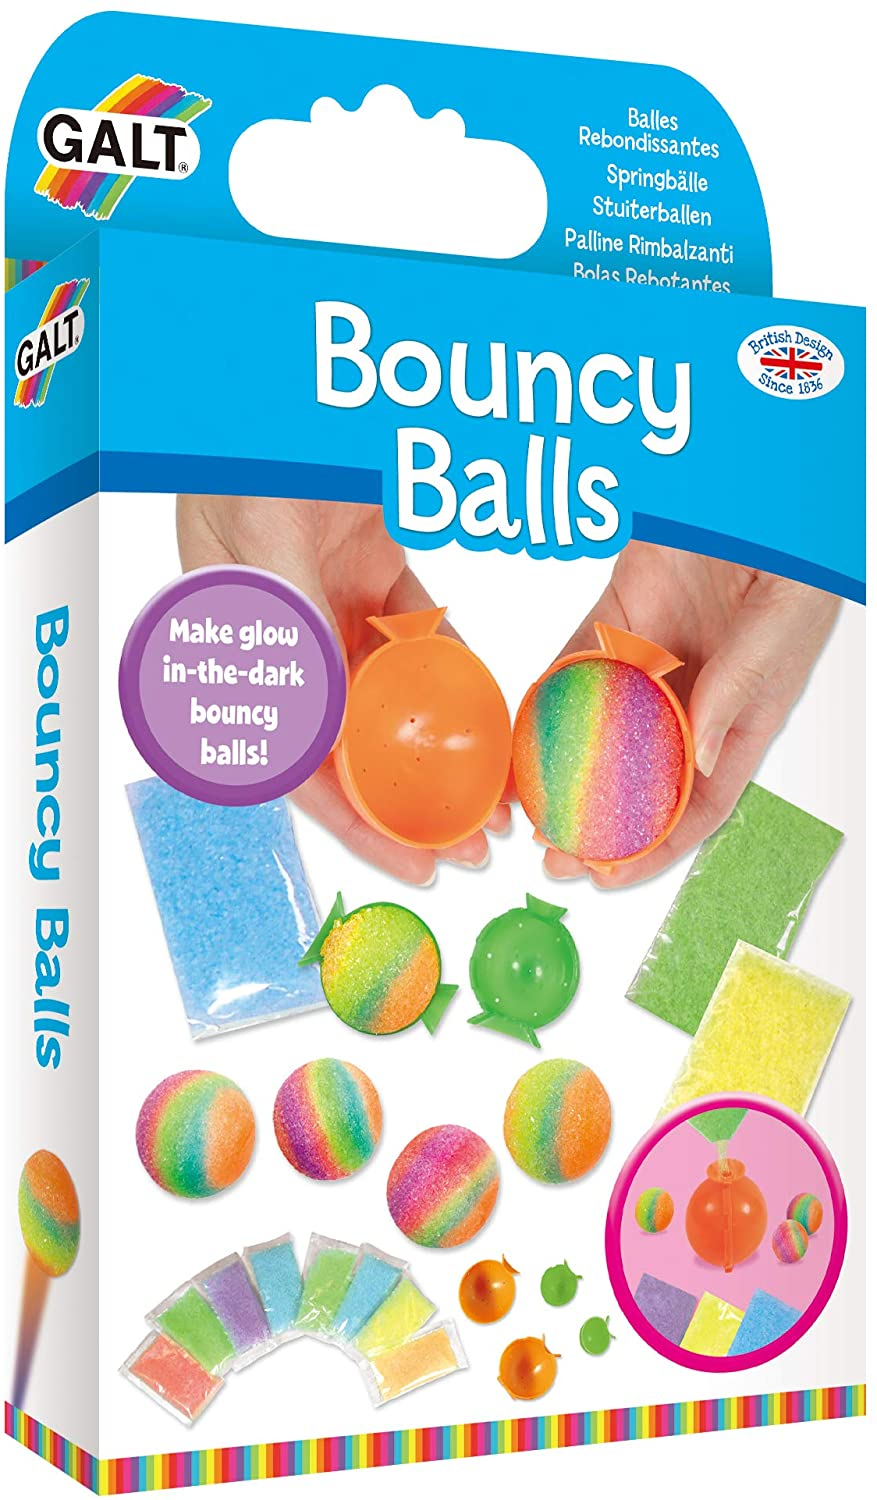 Galt - Bouncy Balls